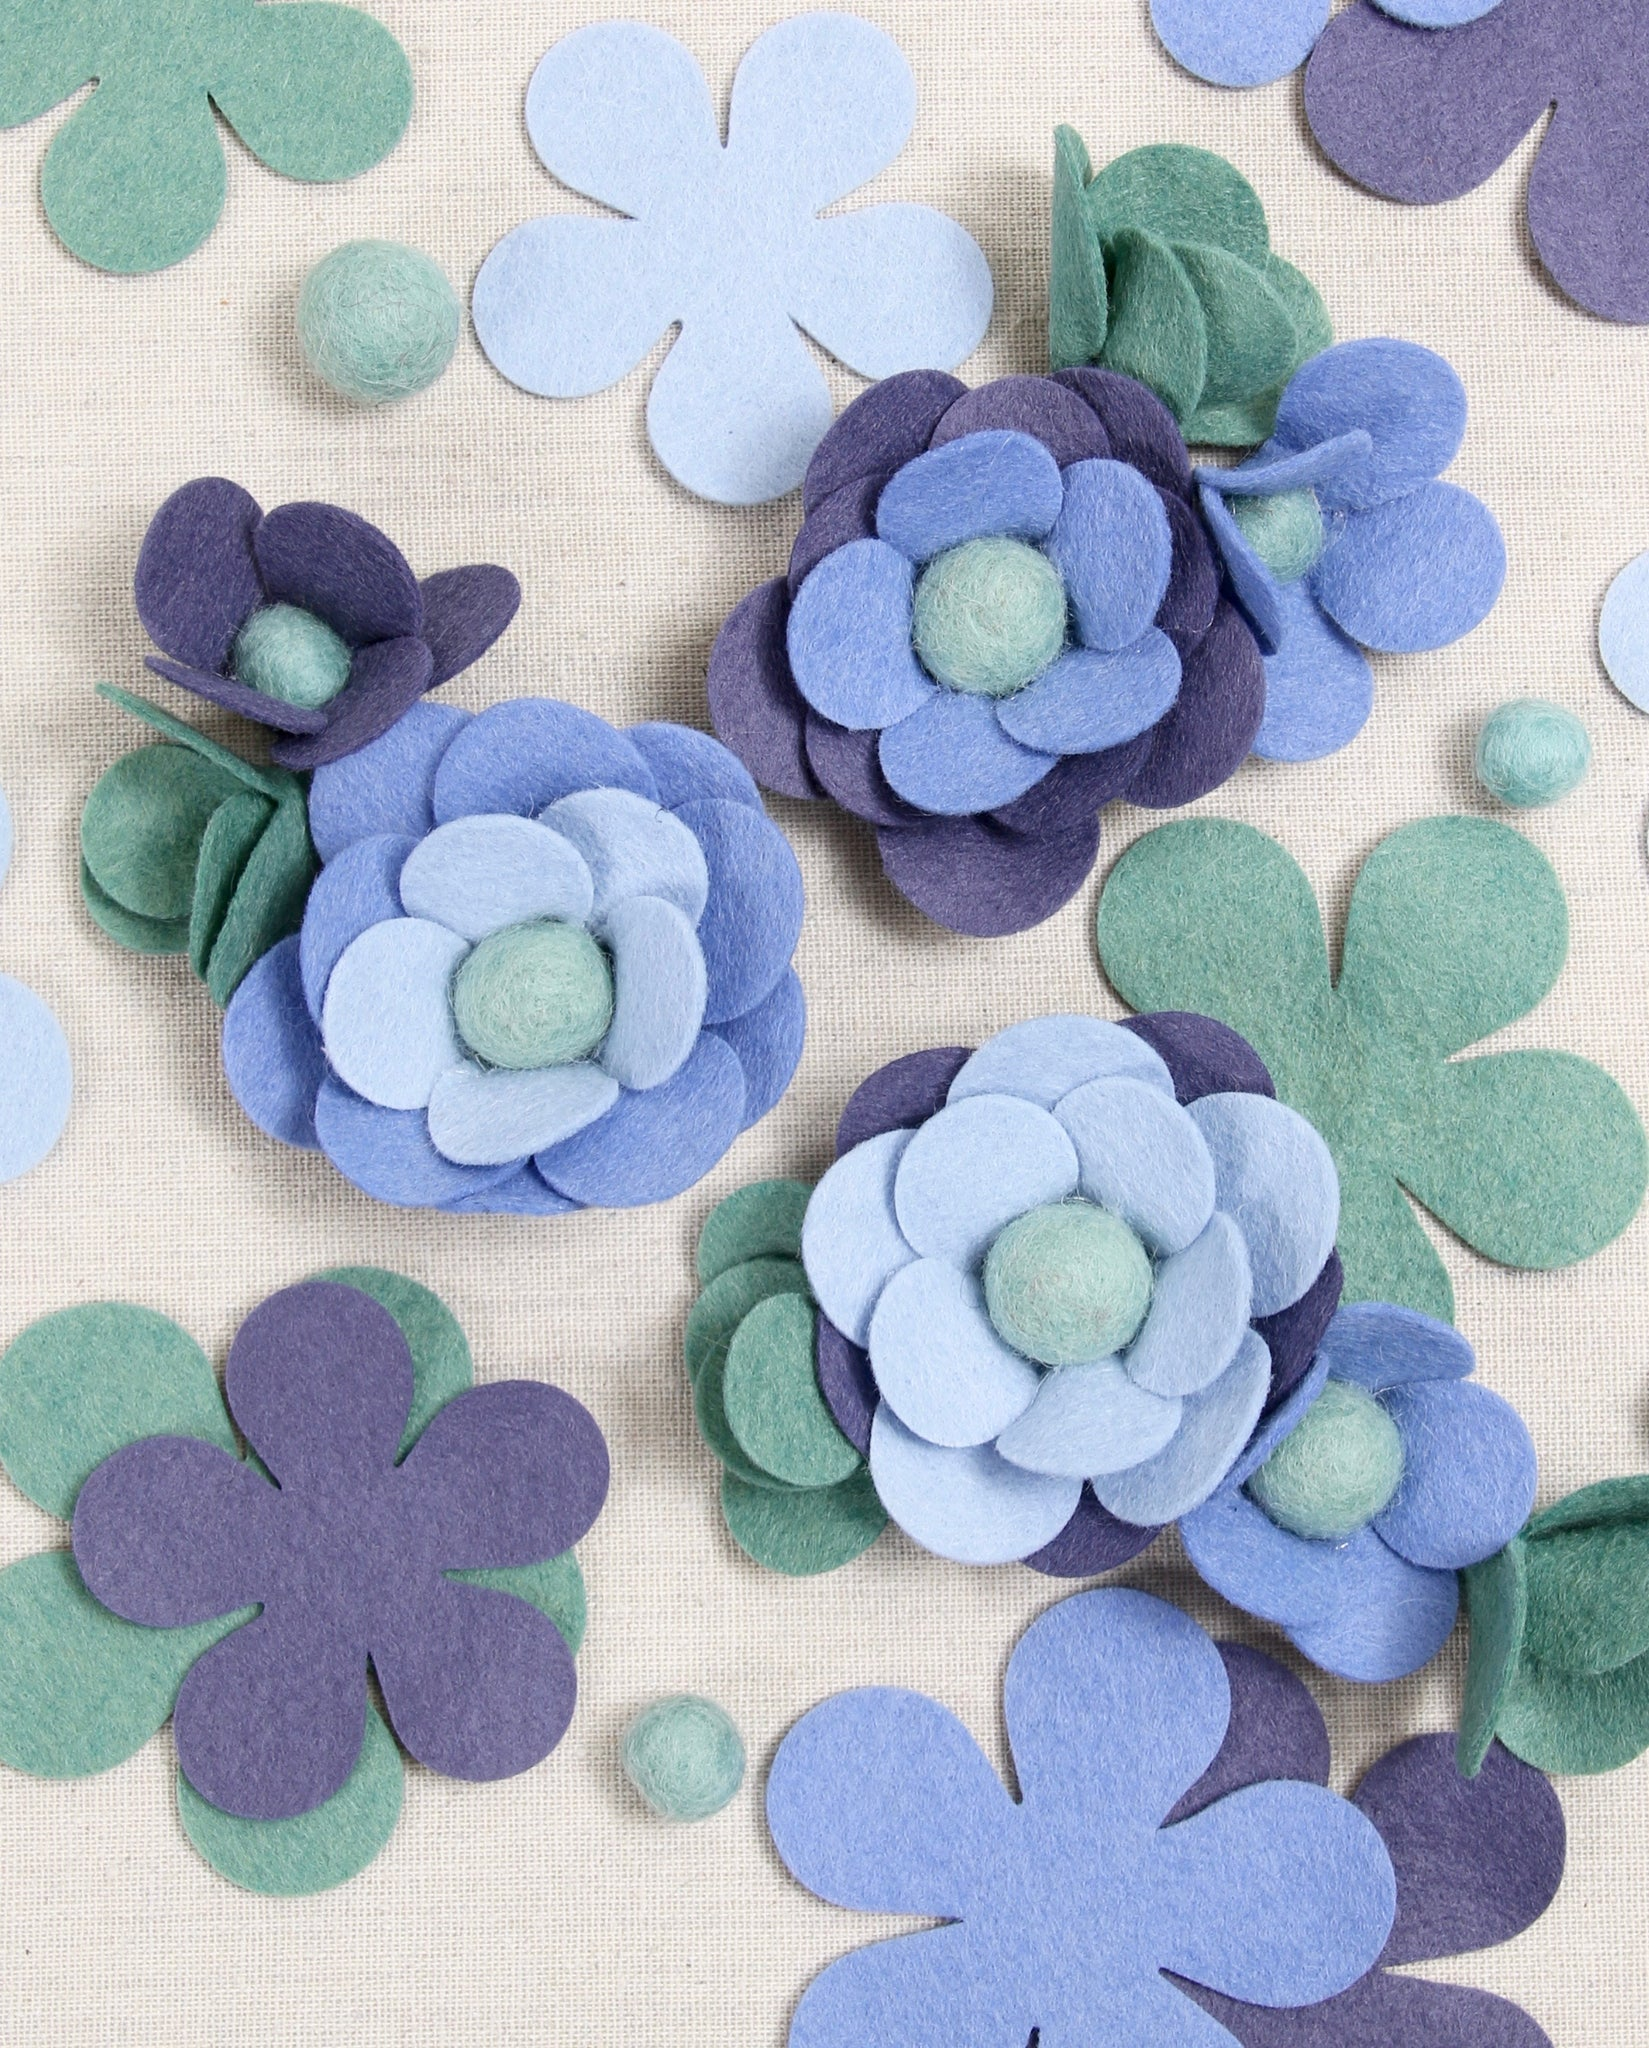 felt flower blossoms, free pattern